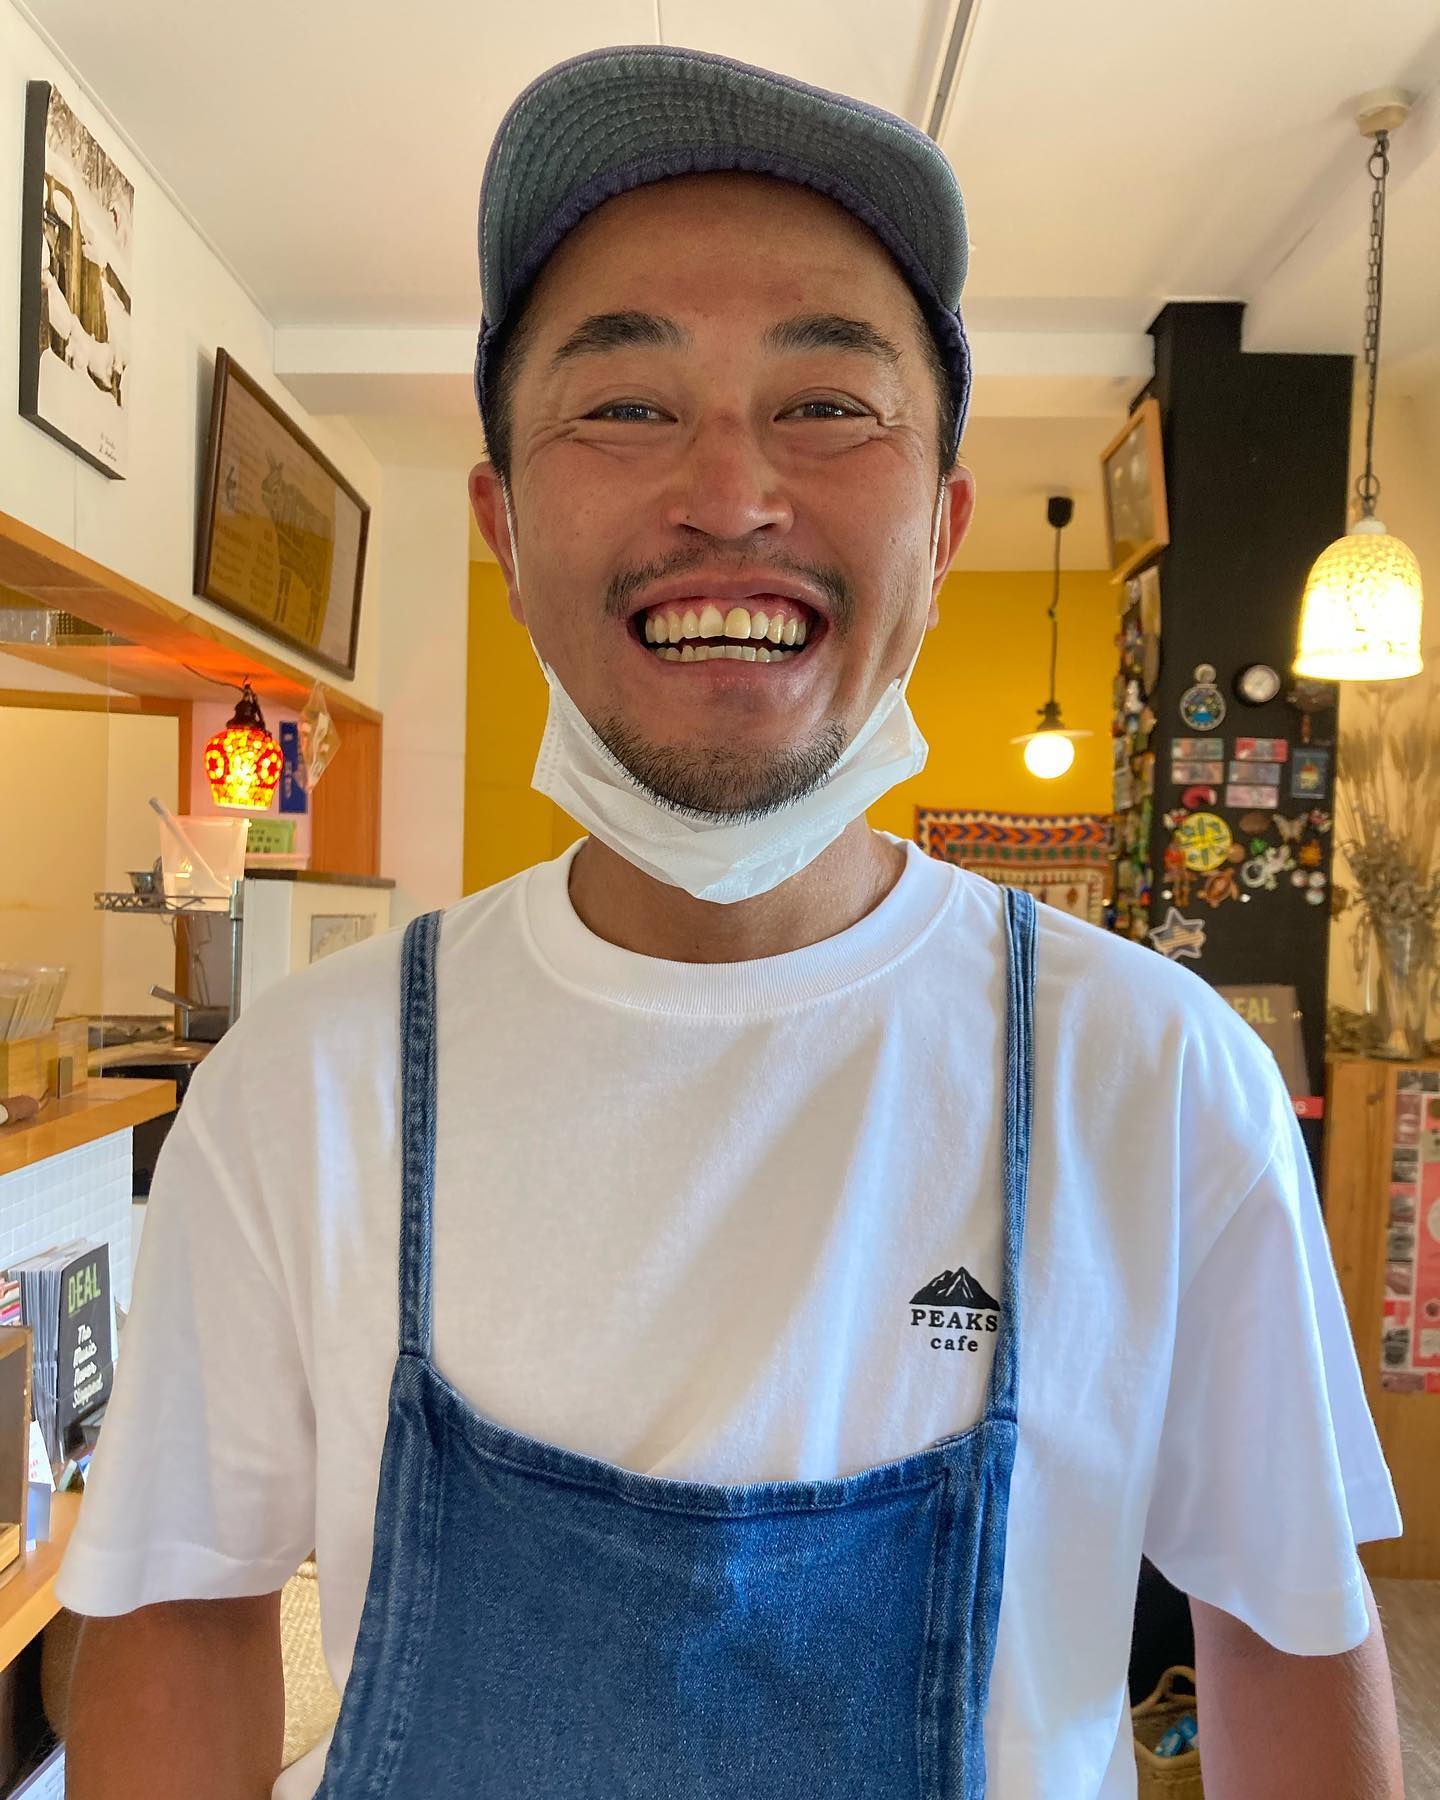 Thank you for your order !! PEAKS cafe 様(養父市関宮)